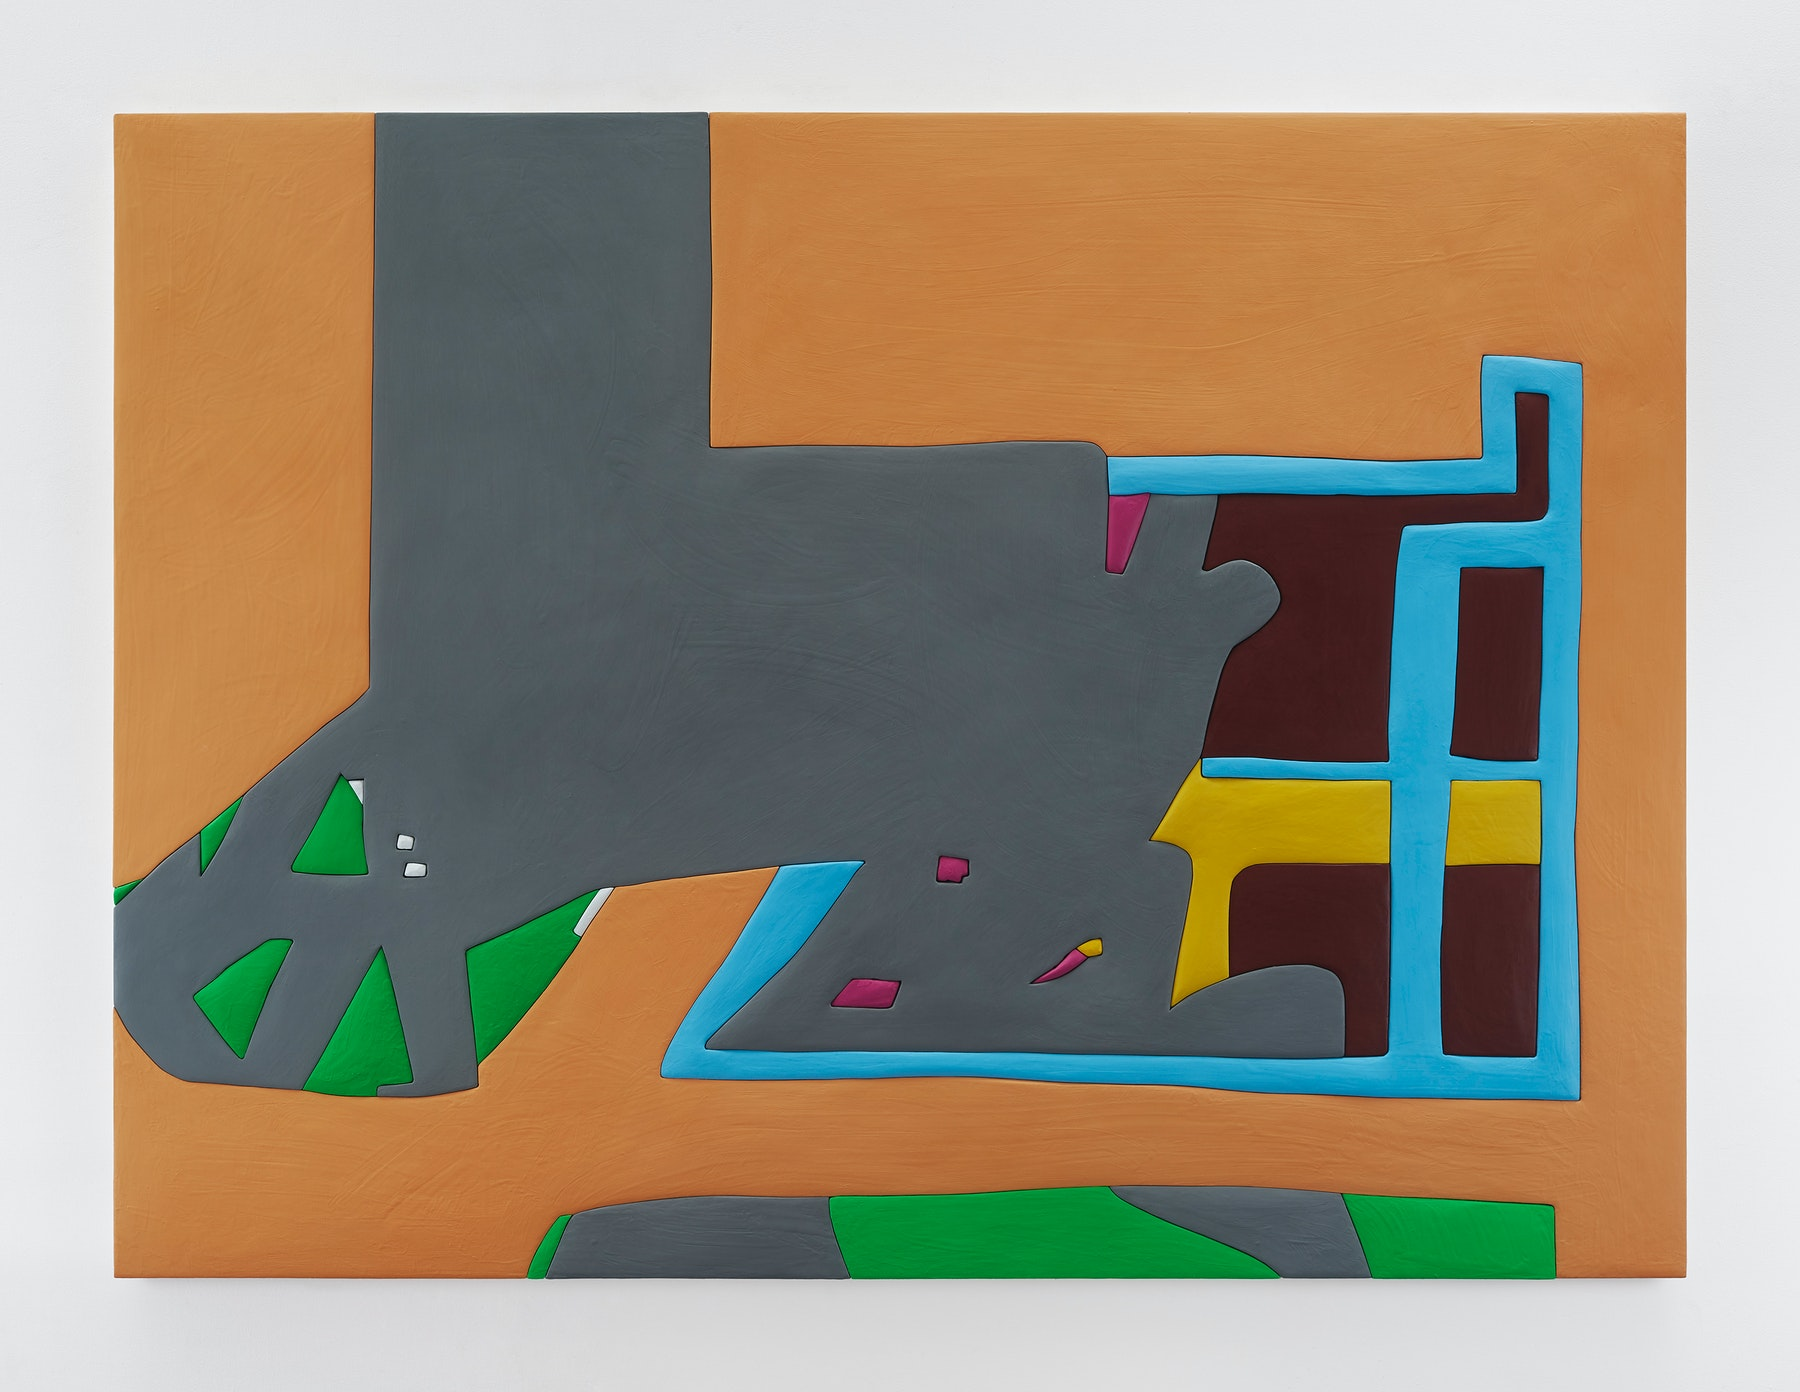 "Sadie Benning ""Untitled 5,"" 2019 Wood, aqua resin, casein, and acrylic gouache 59 x 80"" [HxW] (149.86 x 203.2 cm) Inventory #BEN859 Courtesy of the artist and Vielmetter Los Angeles Photocredit: Chris Austin"